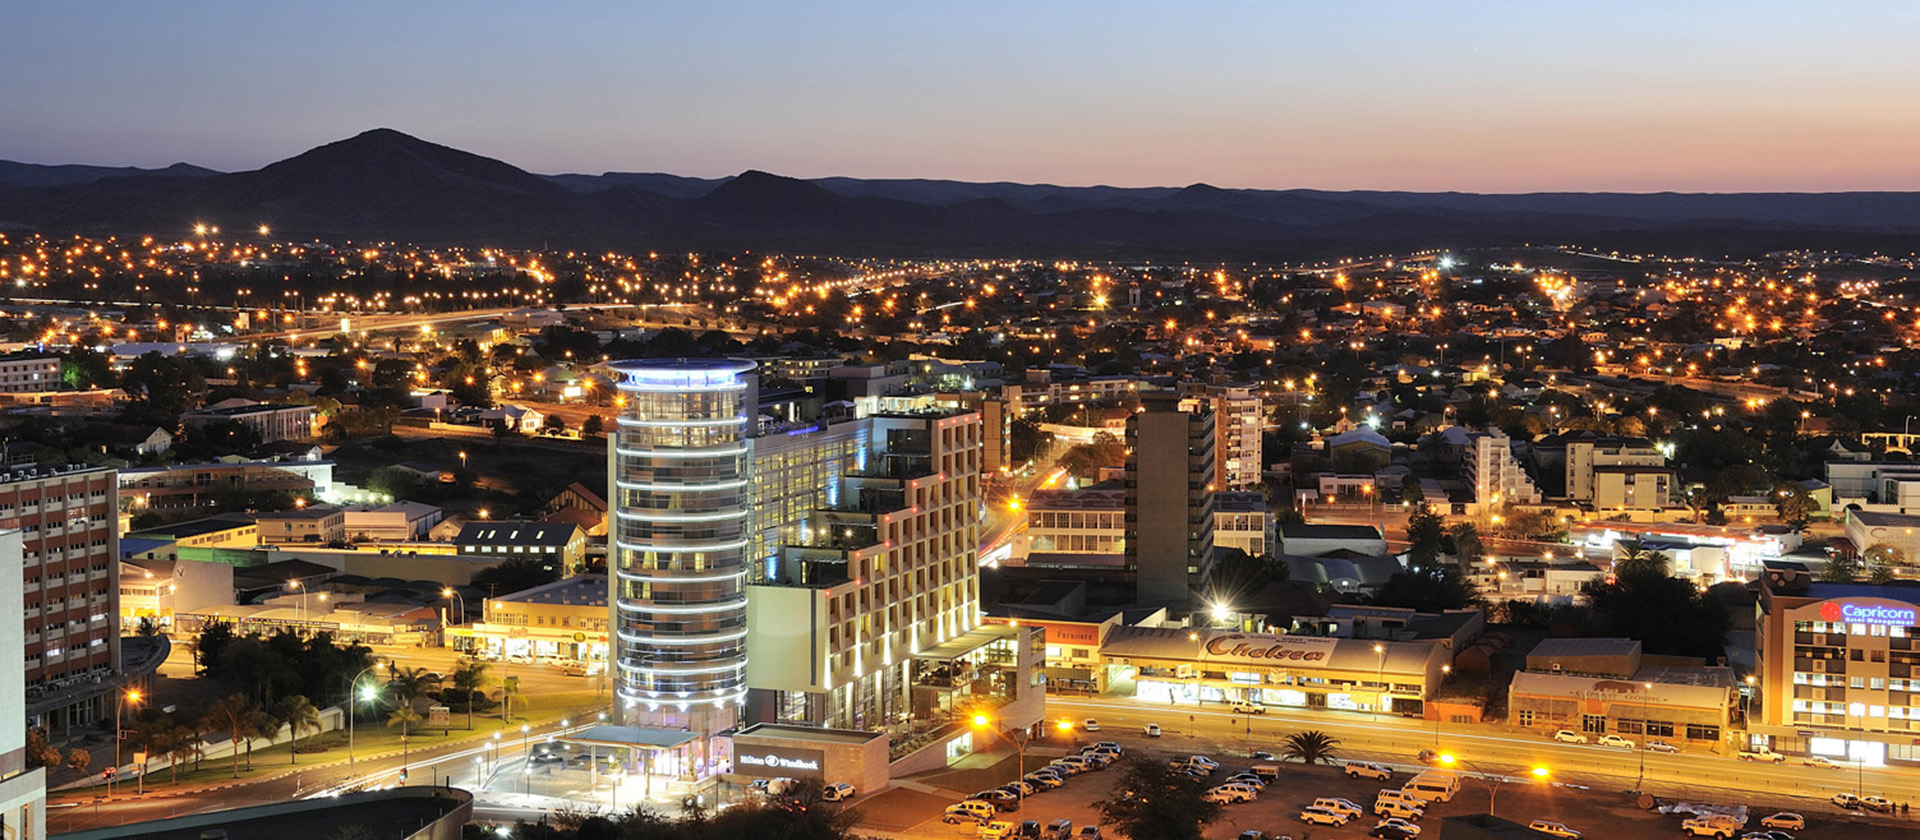 Vacation Hub International - Destination - Windhoek